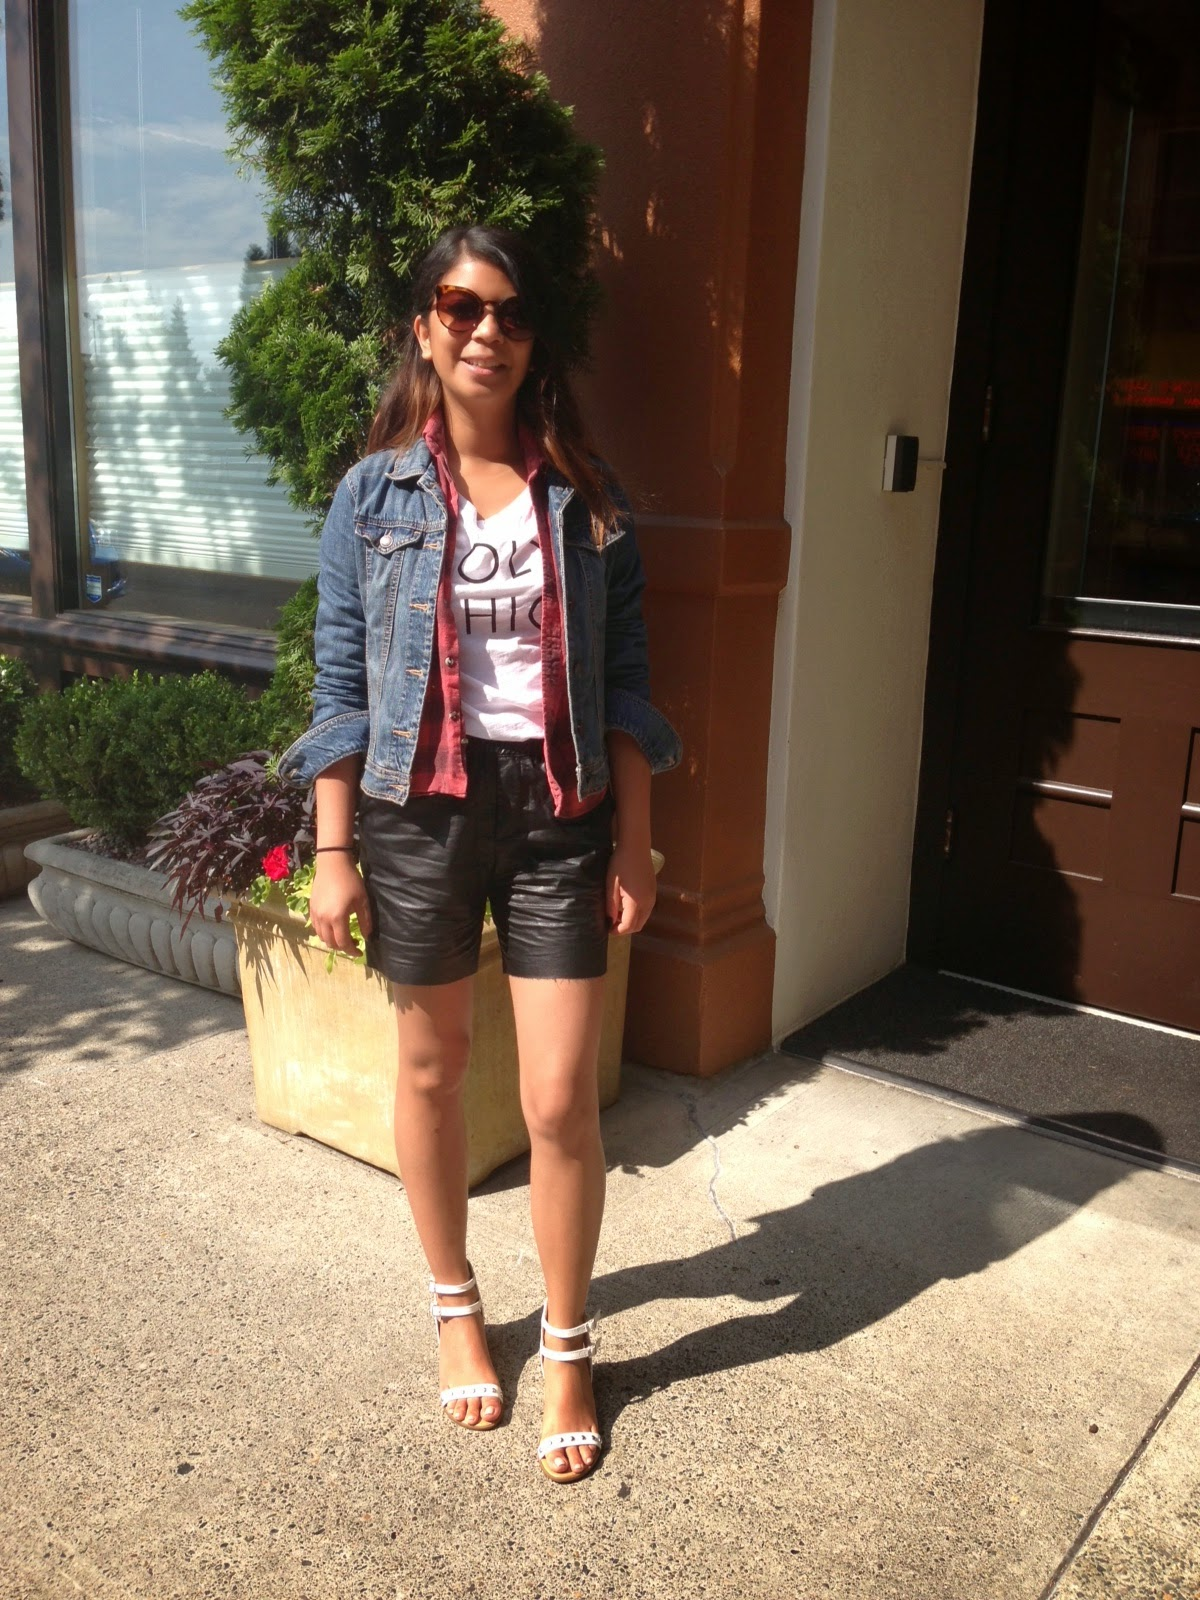 portland blogger, holy chic, street style, fashion blogger, affordable fashion, old navy, flannel, faux leather shorts, summer to fall